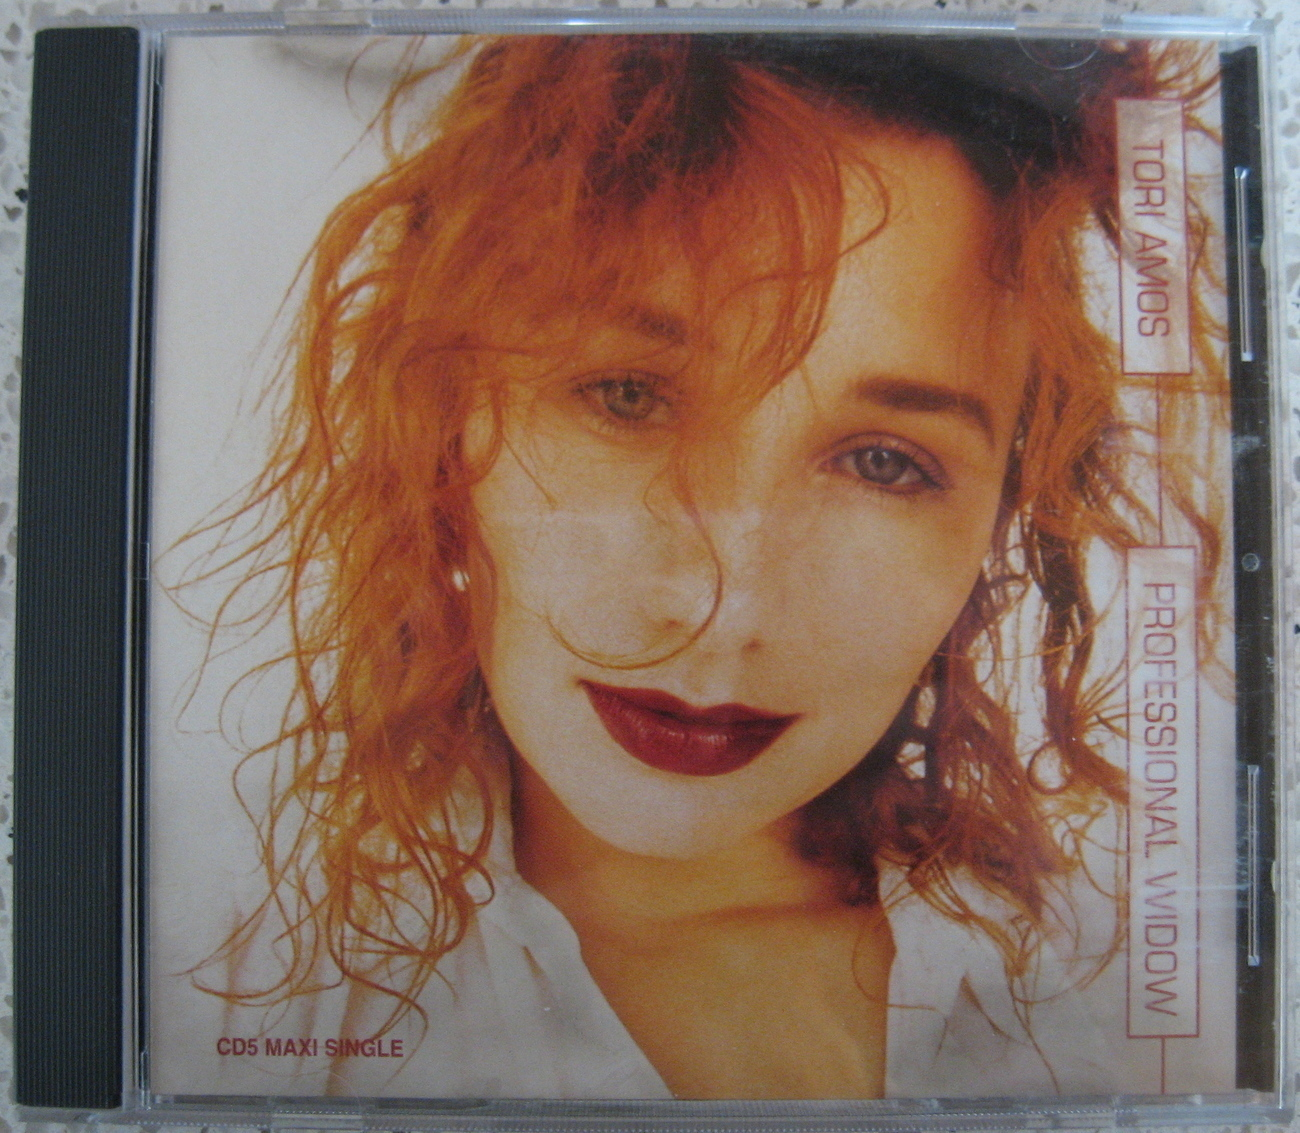 Tori Amos Professional Widow CD5 Maxi Single CD 1996 Armand's MK Vampire Dub Mix